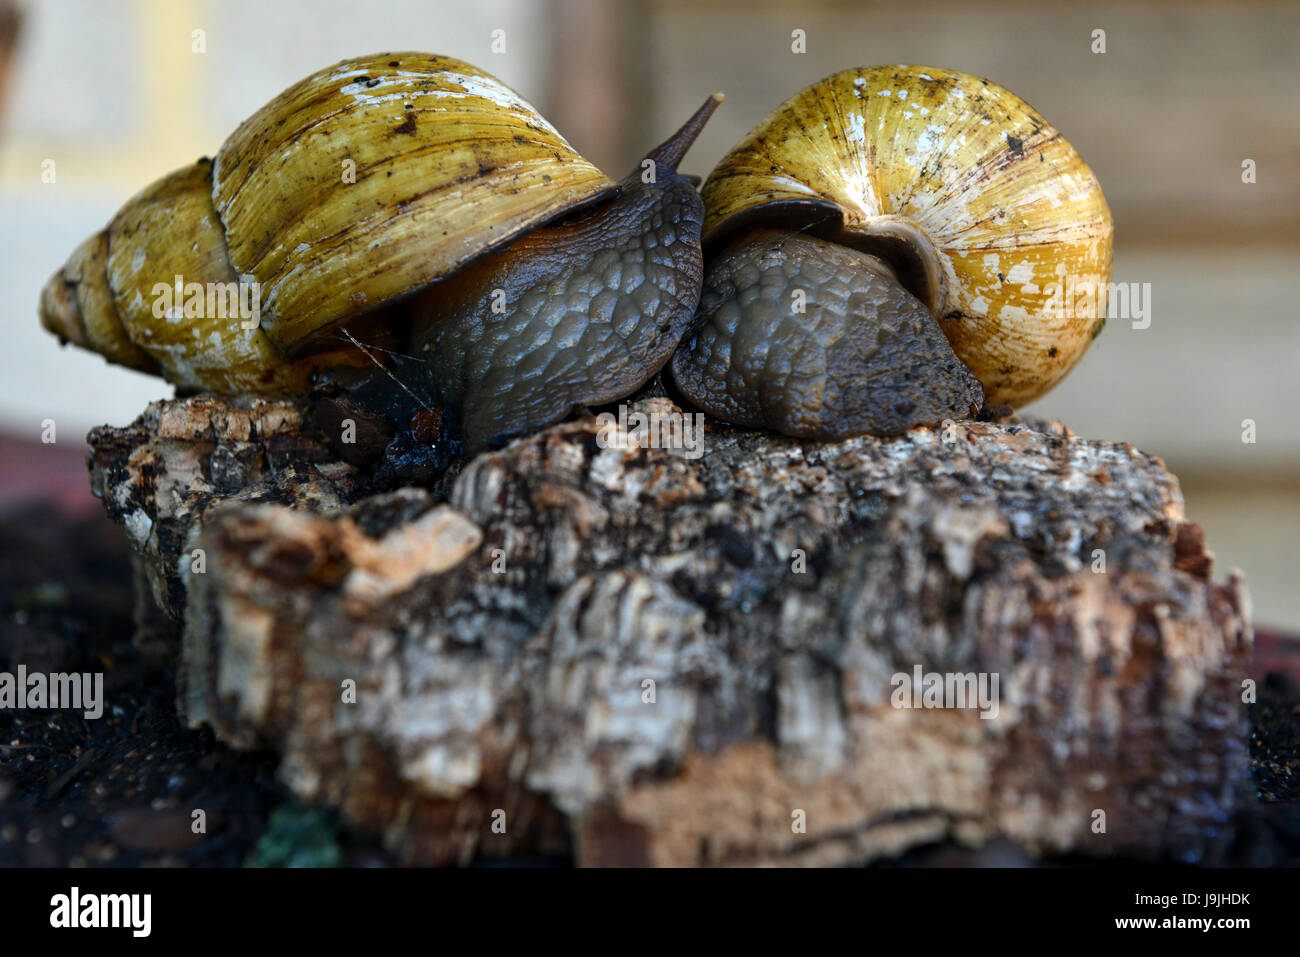 Giant African land snails - Stock Image